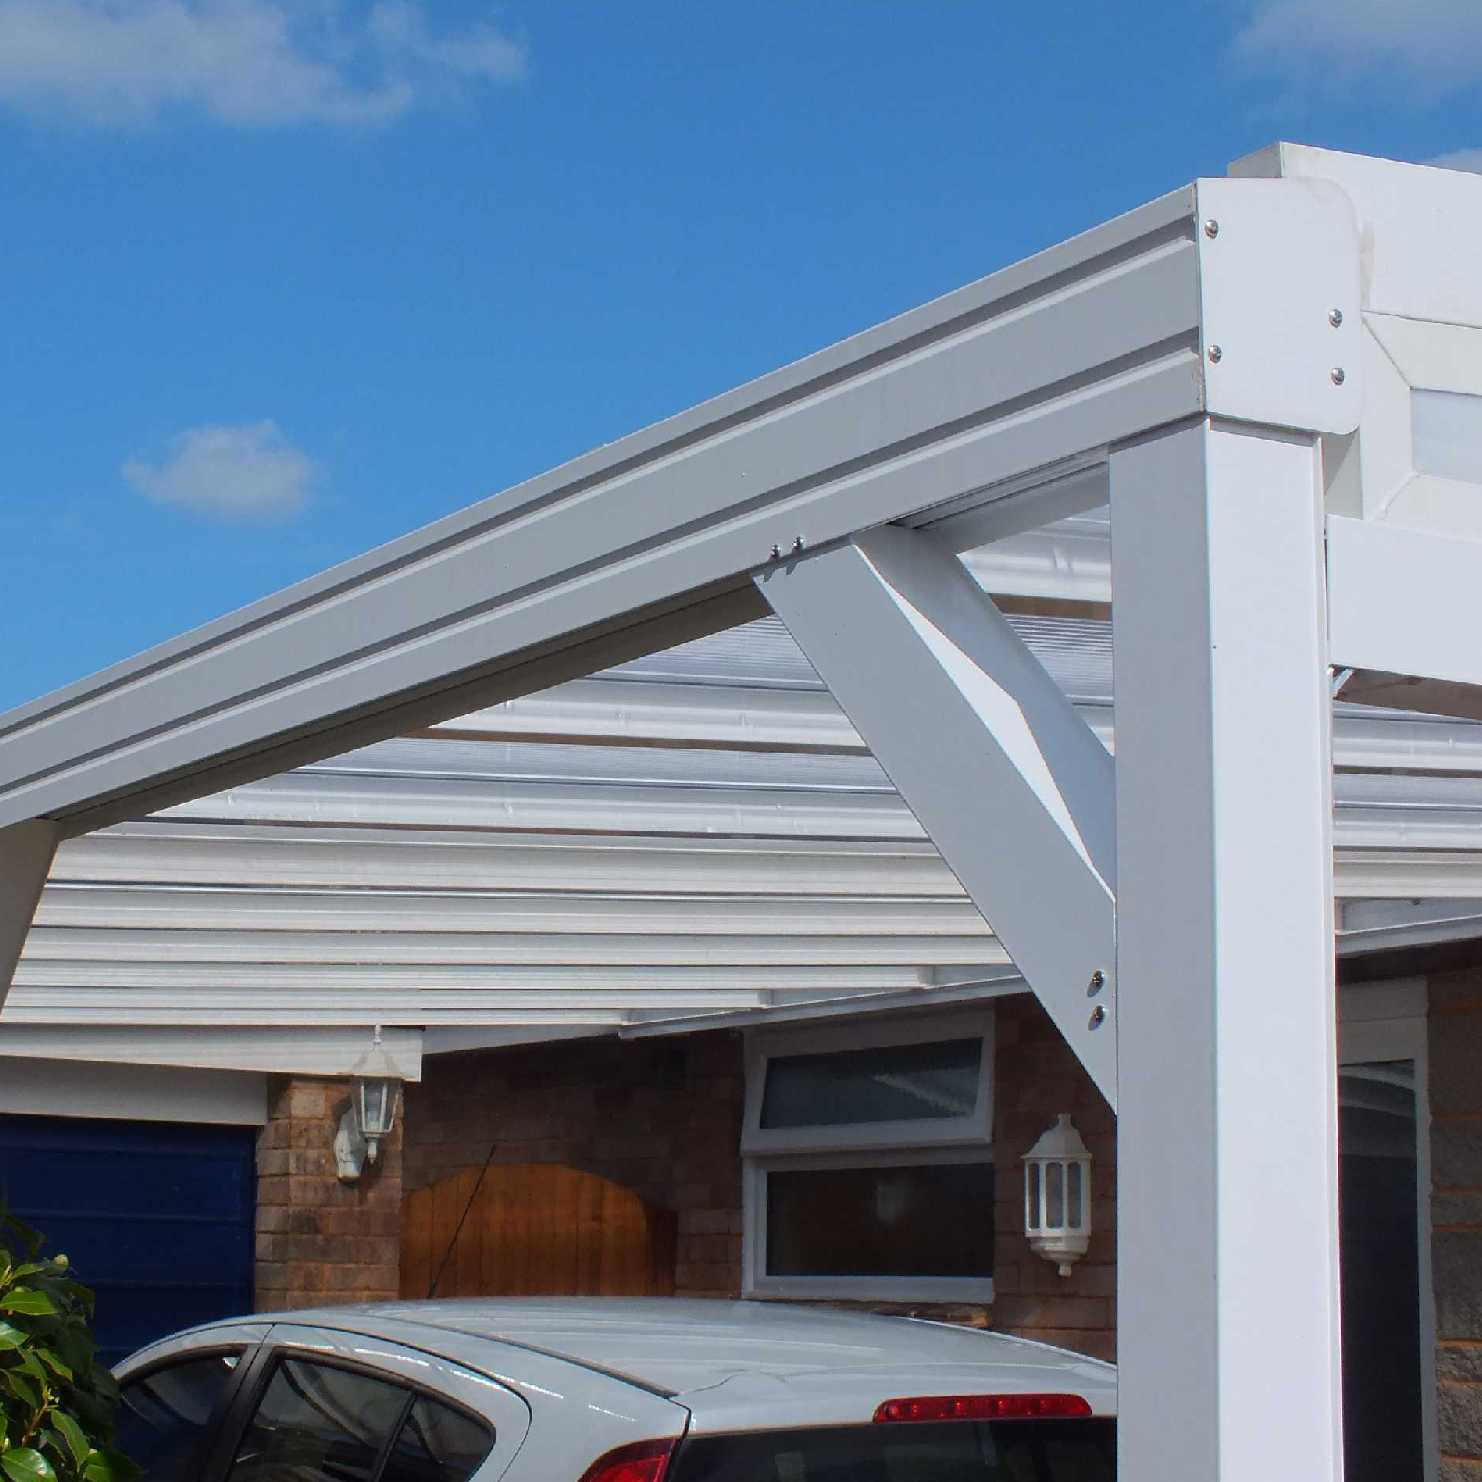 Great deals on Omega Smart White Lean-To Canopy with 16mm Polycarbonate Glazing - 3.5m (W) x 3.5m (P), (3) Supporting Posts